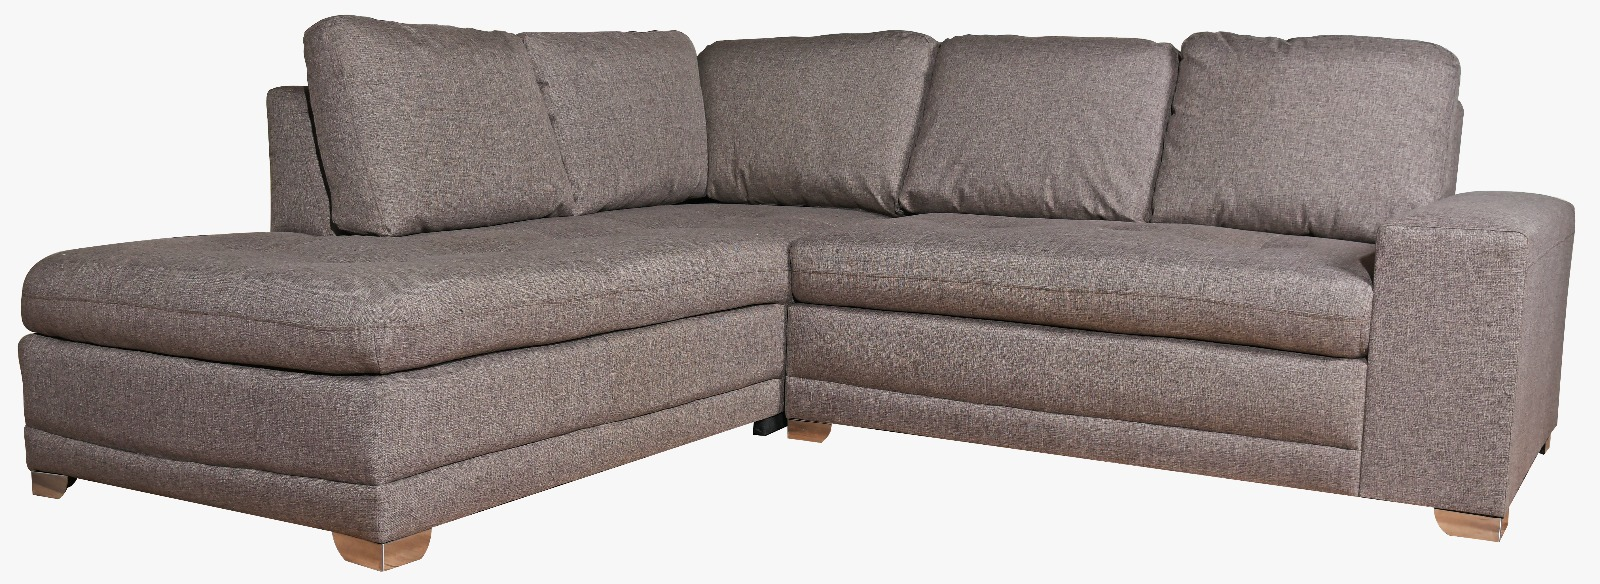 Loft Corner Couch Discount Decor Cheap Mattresses